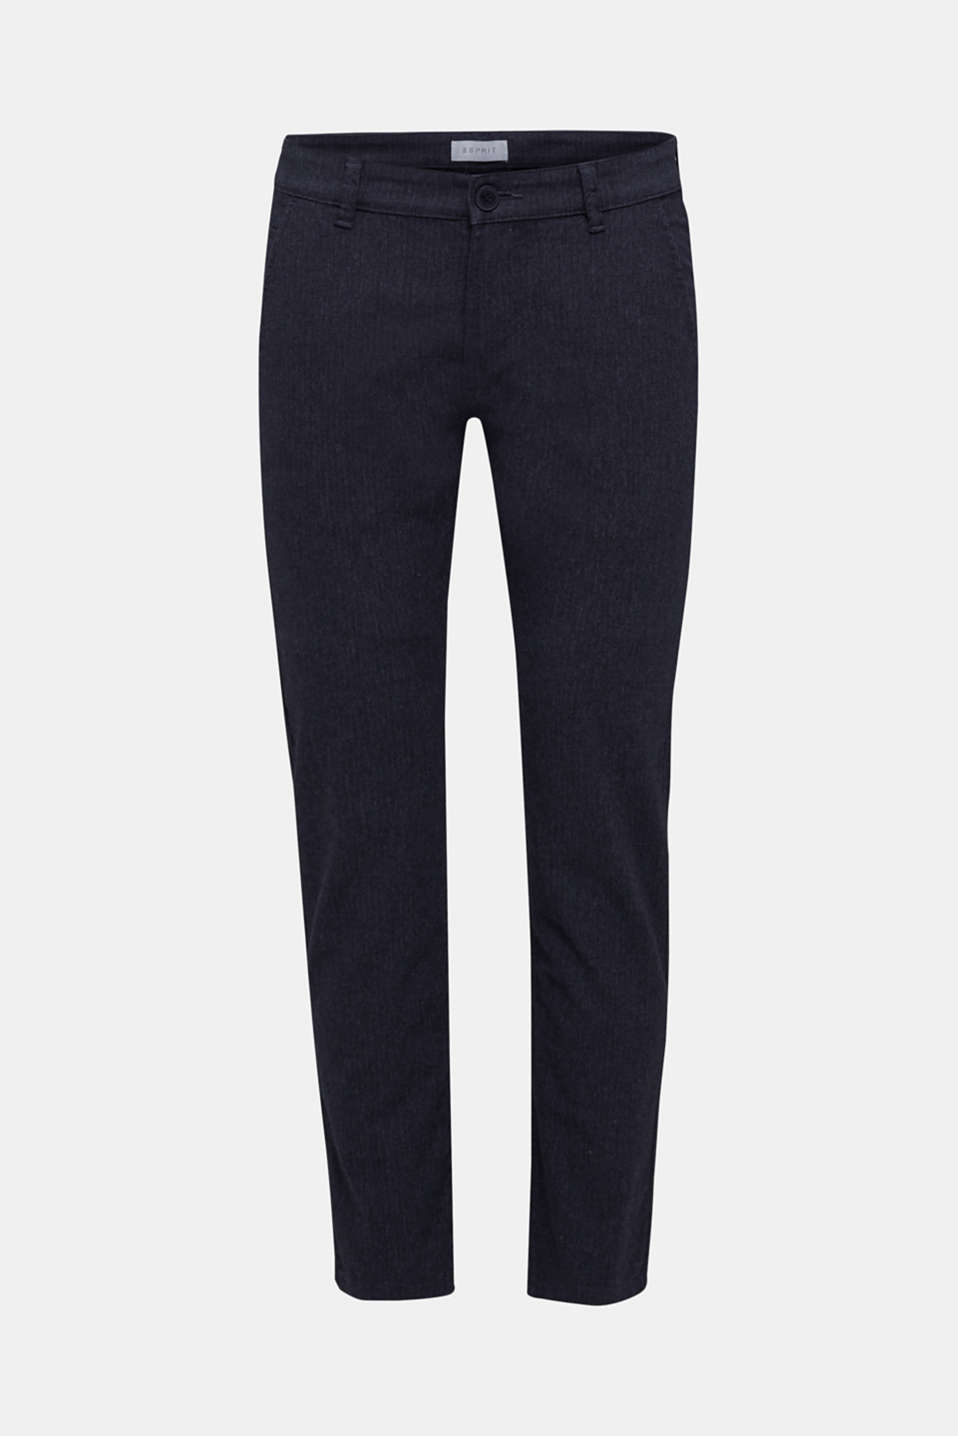 Two-tone stretch chinos, NAVY, detail image number 6